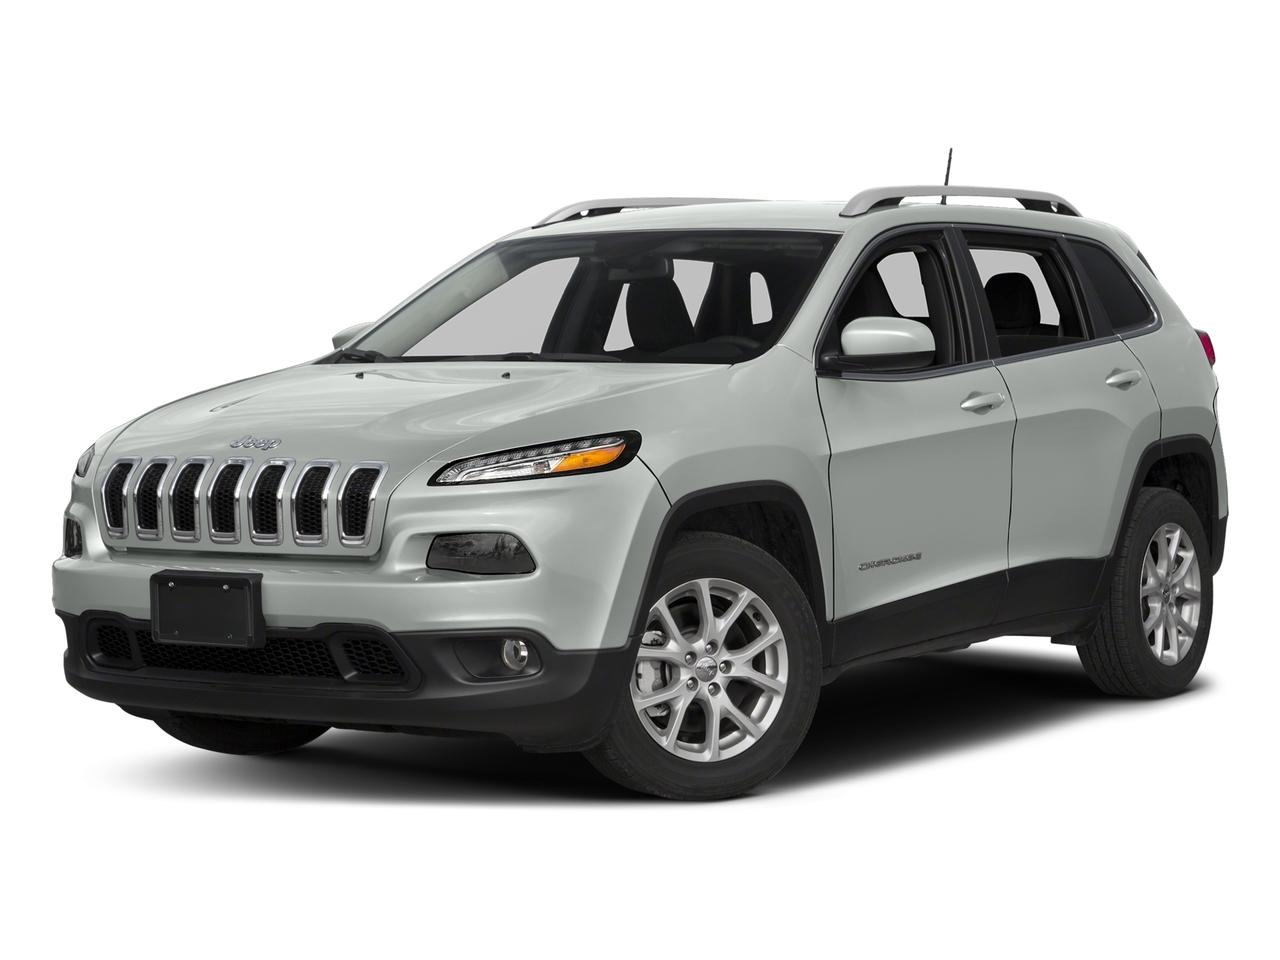 2018 Jeep Cherokee Vehicle Photo in Frisco, TX 75035